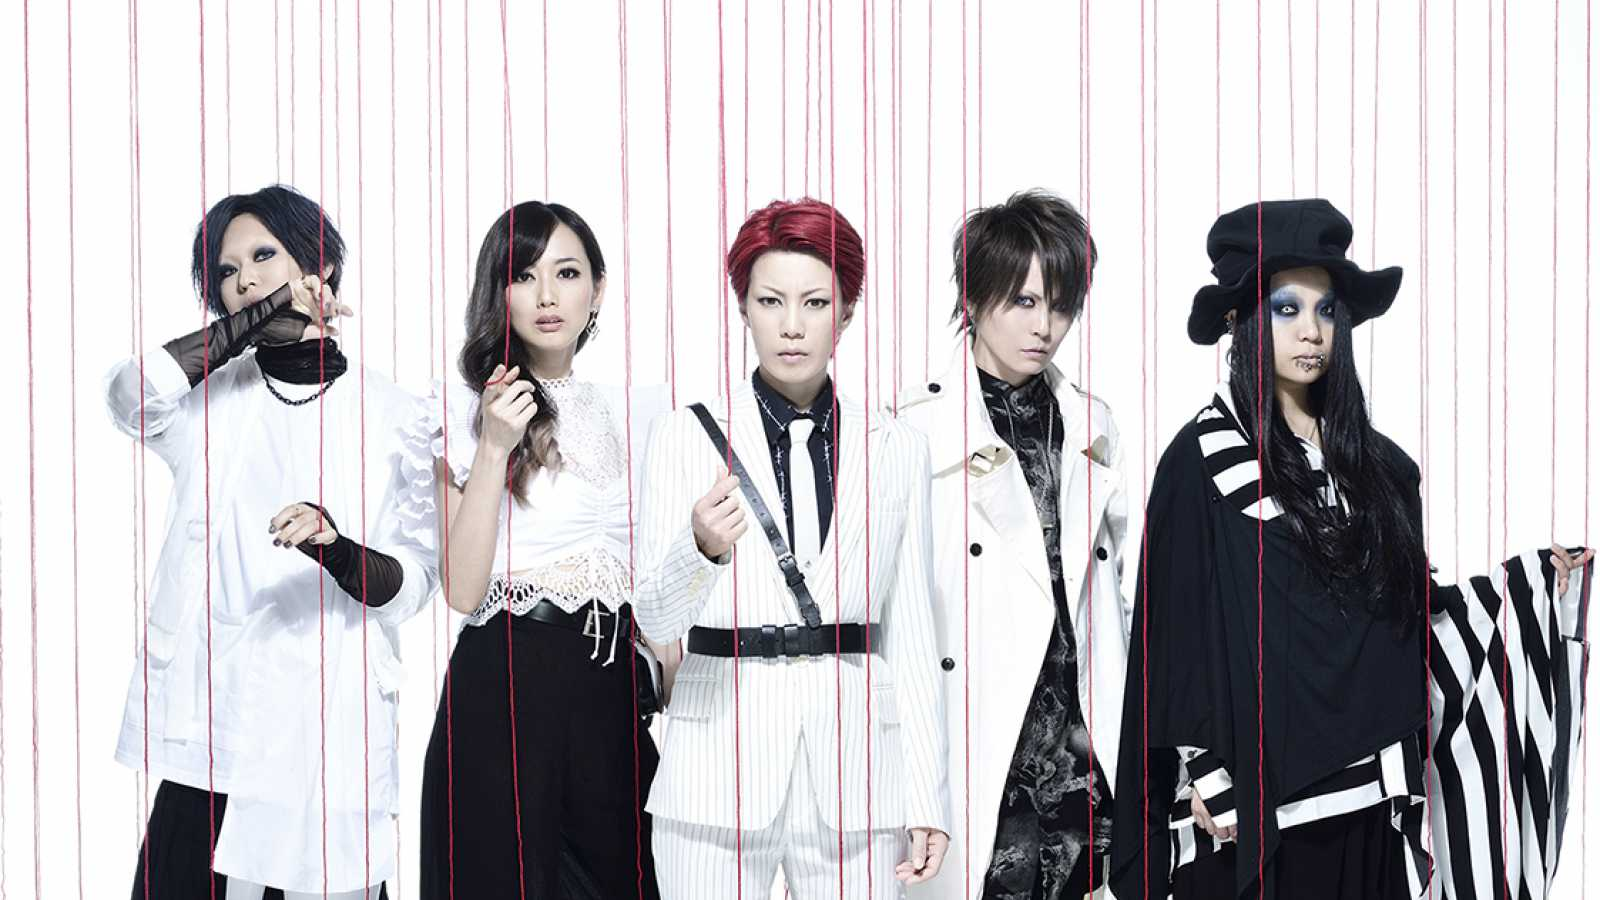 exist†trace © Monster's inc All Rights Reserved.